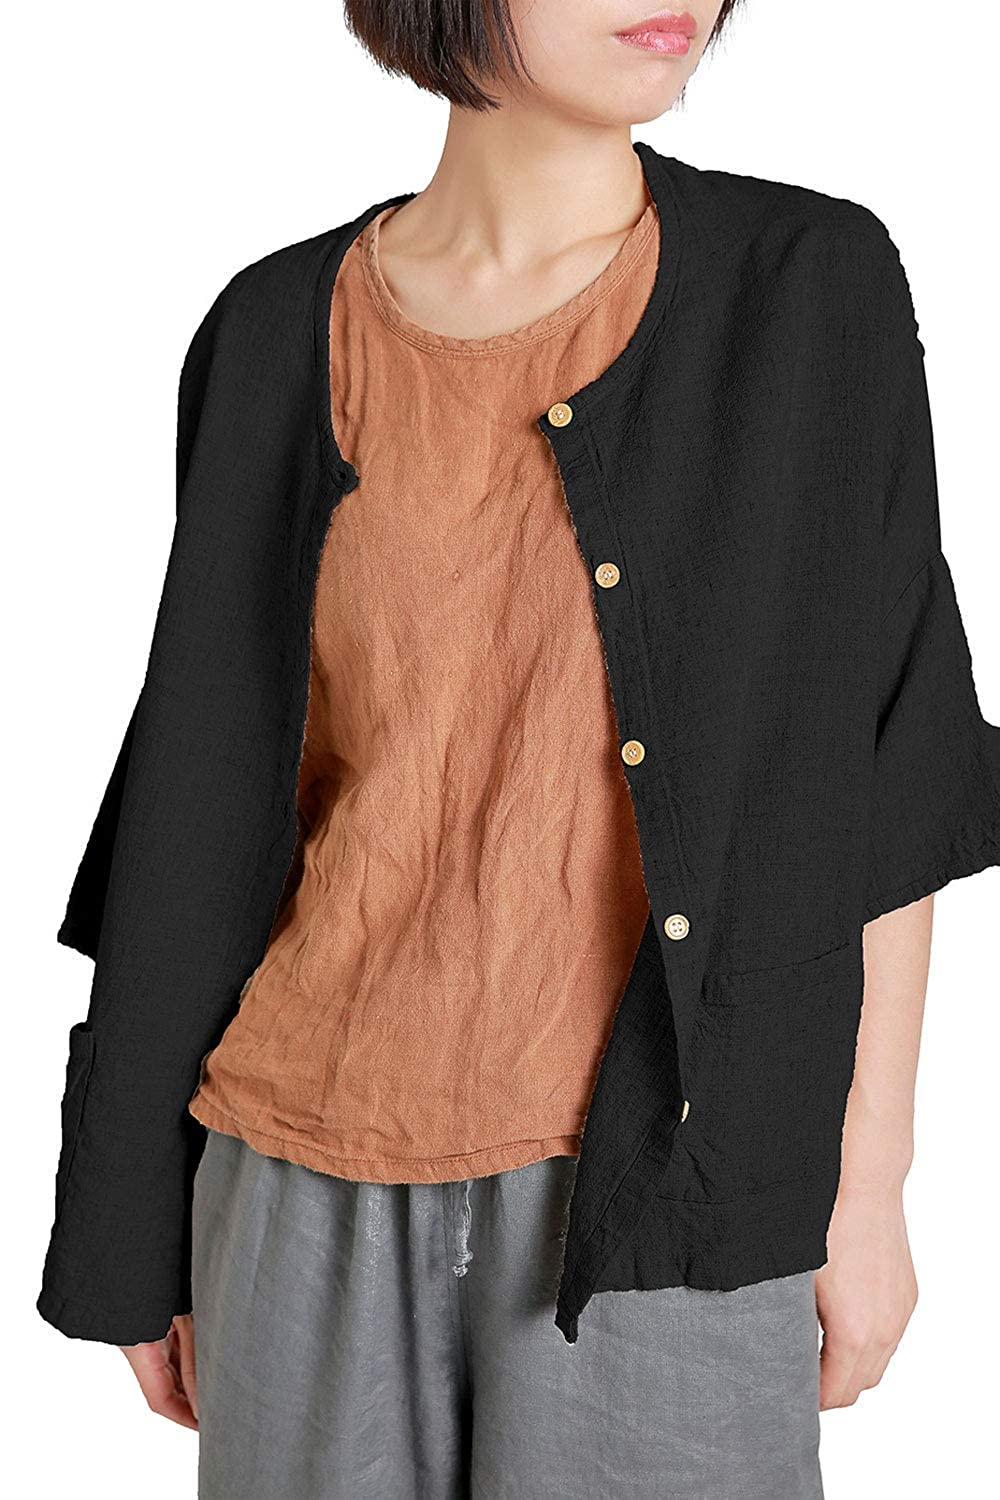 Ecupper Women Casual Linen Tops Loose Fit Blouse 3//4 Sleeves Shirt with Pocket